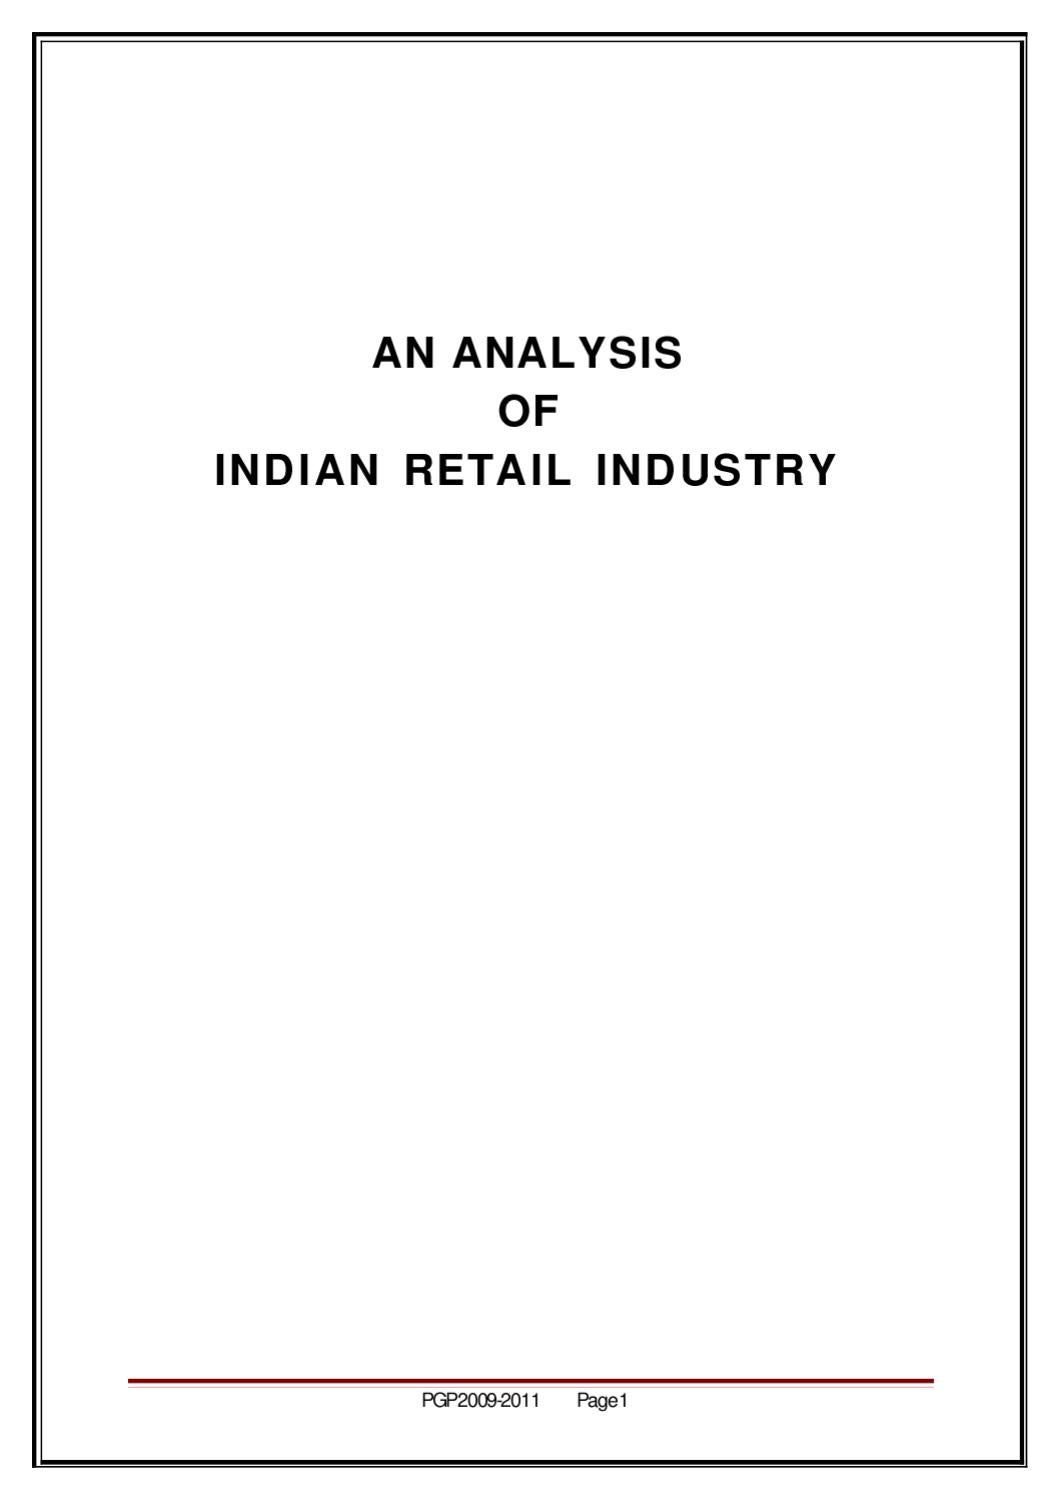 an analysis of n retail industry by sanjay gupta issuu